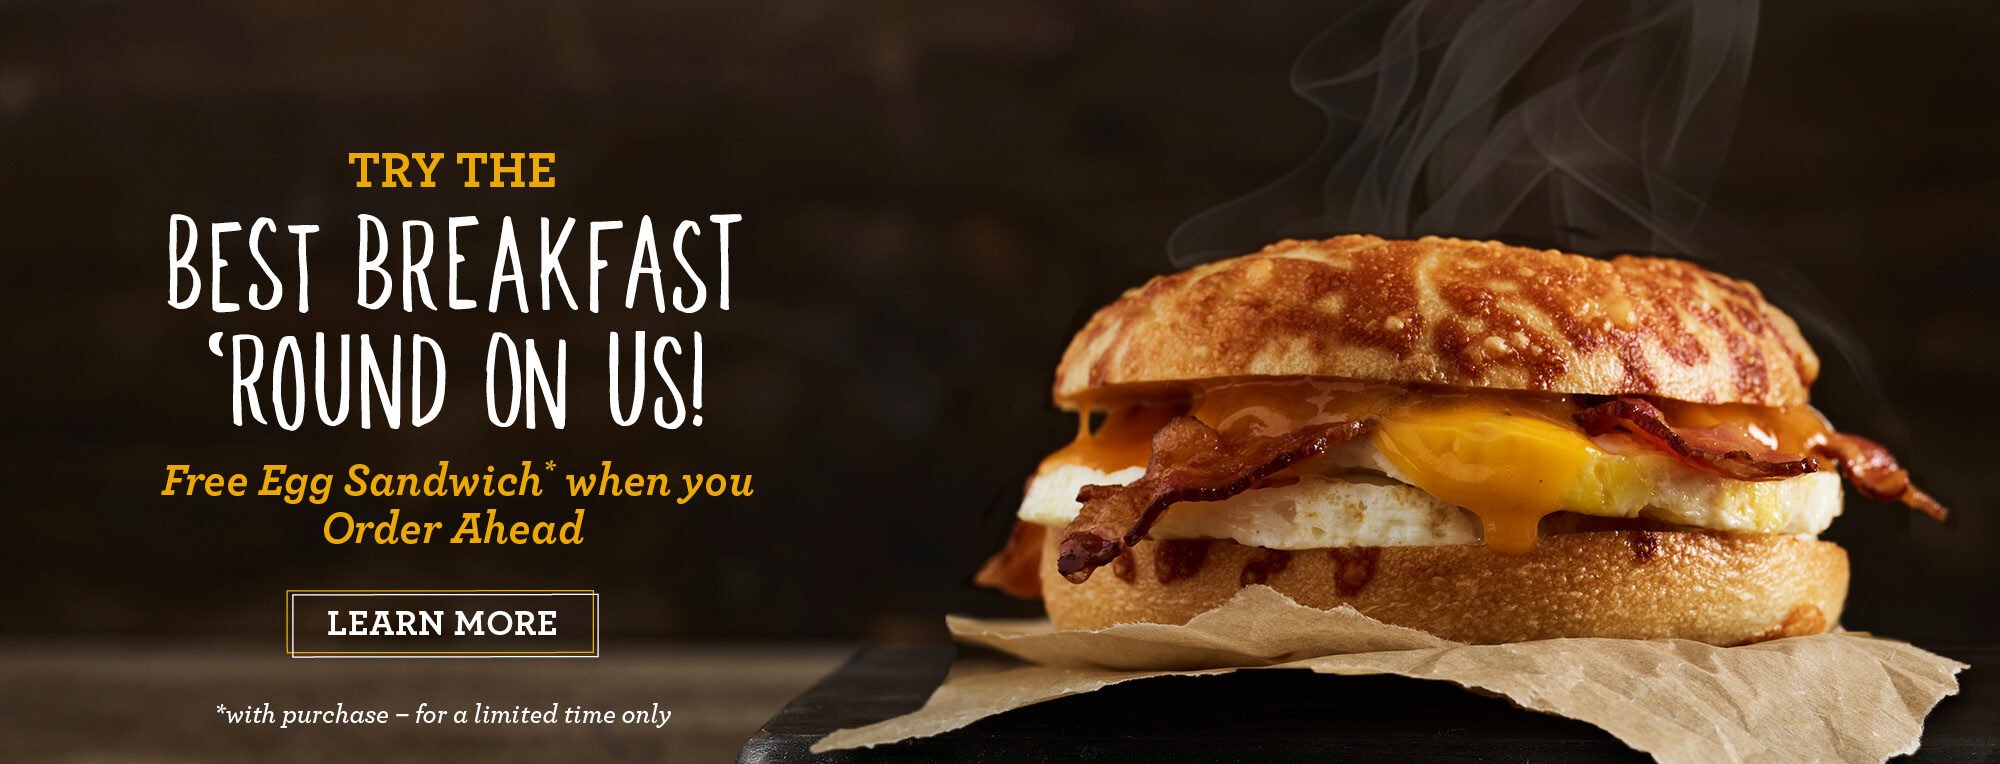 ROTATING IMAGE: Taste for Yourself. The Best Bast Breakfast Round. Try a Free Egg Sandwich of your choice when your Order Ahead (with purchase - for a limited time). Click to visit our offer page to download our app!